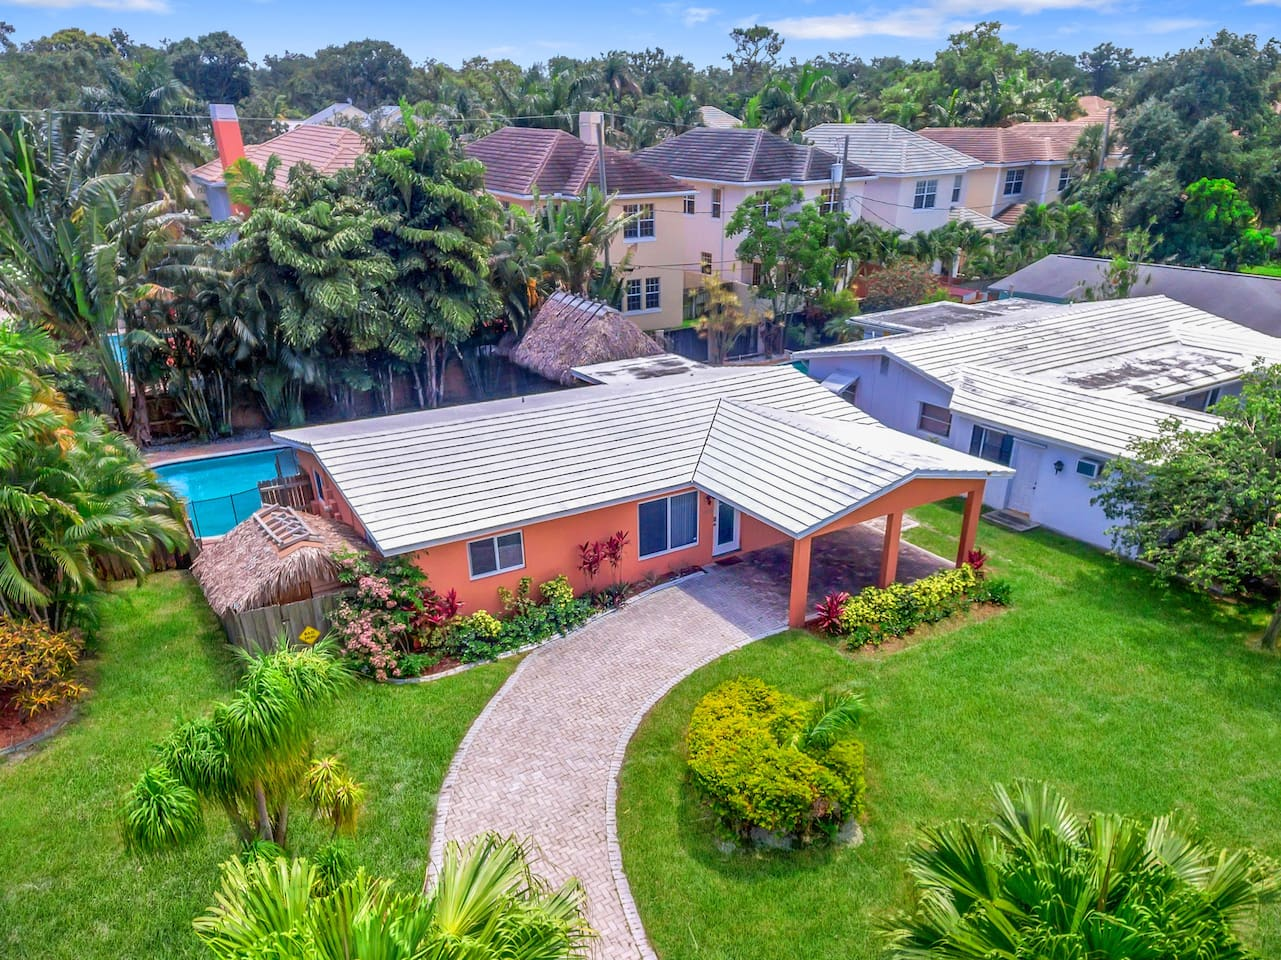 Welcome to Fort Lauderdale! This renovated home is professionally managed by TurnKey Vacation Rentals.This 3BR home features a lushly landscaped pool area with tiki hut and outdoor dining area.